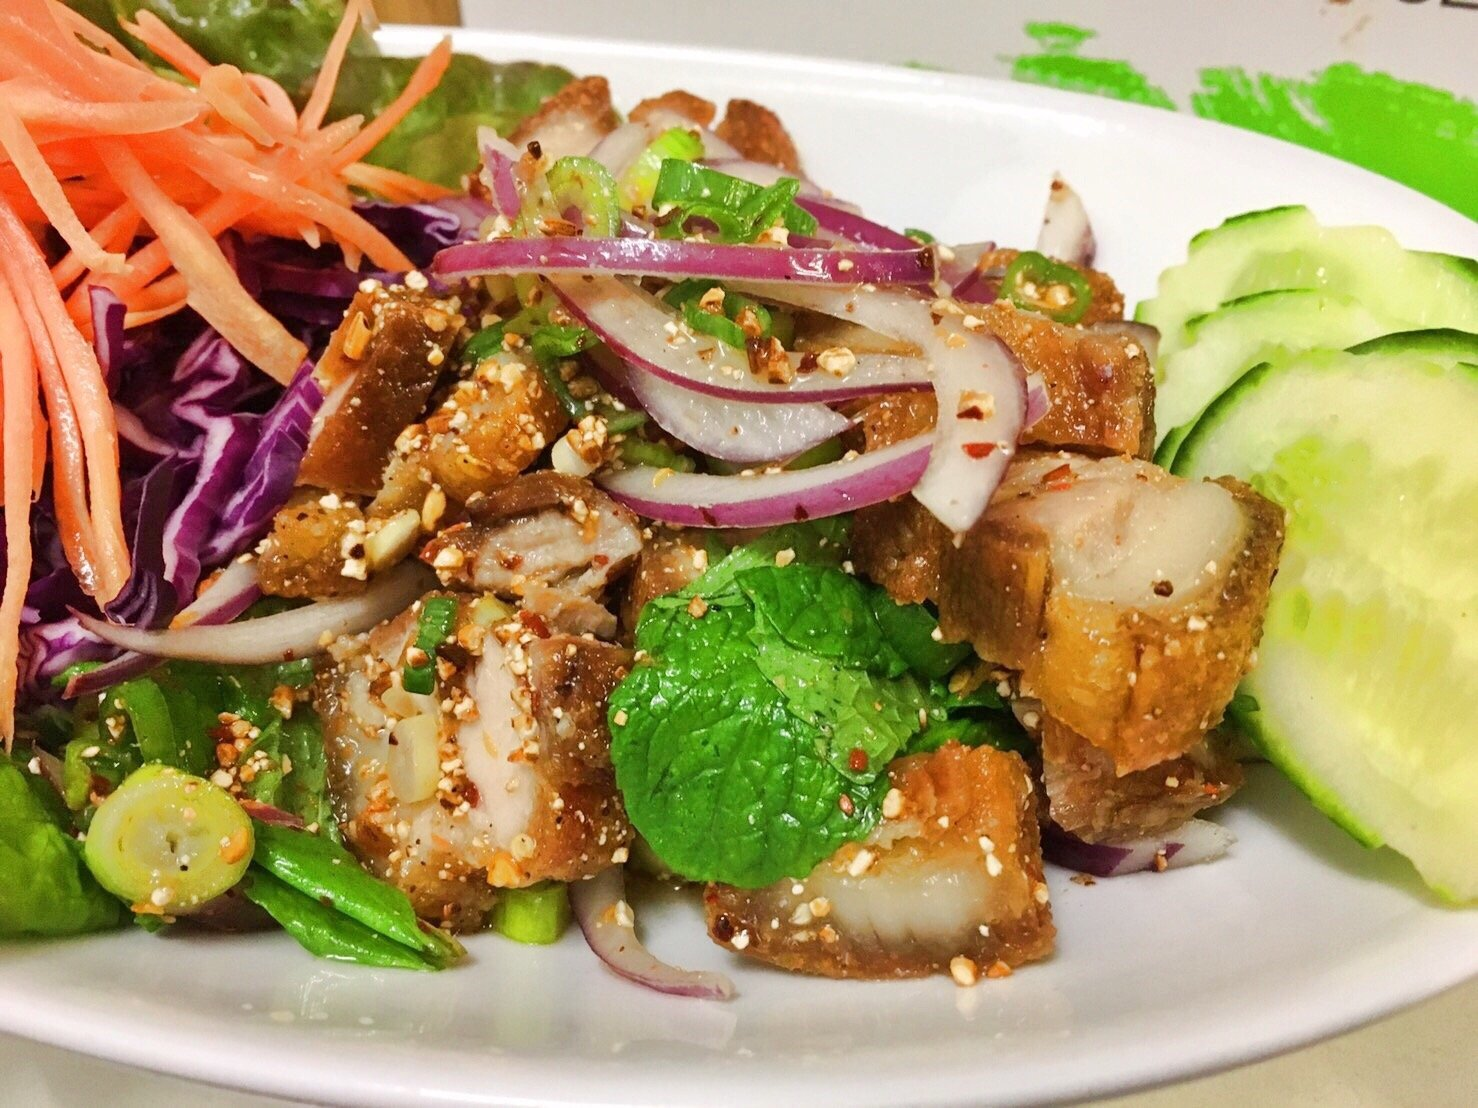 Silver Spoon Thai Restaurant & Cafe | 55 Junction St, Nowra, New South Wales 2541 | +61 2 4421 7679